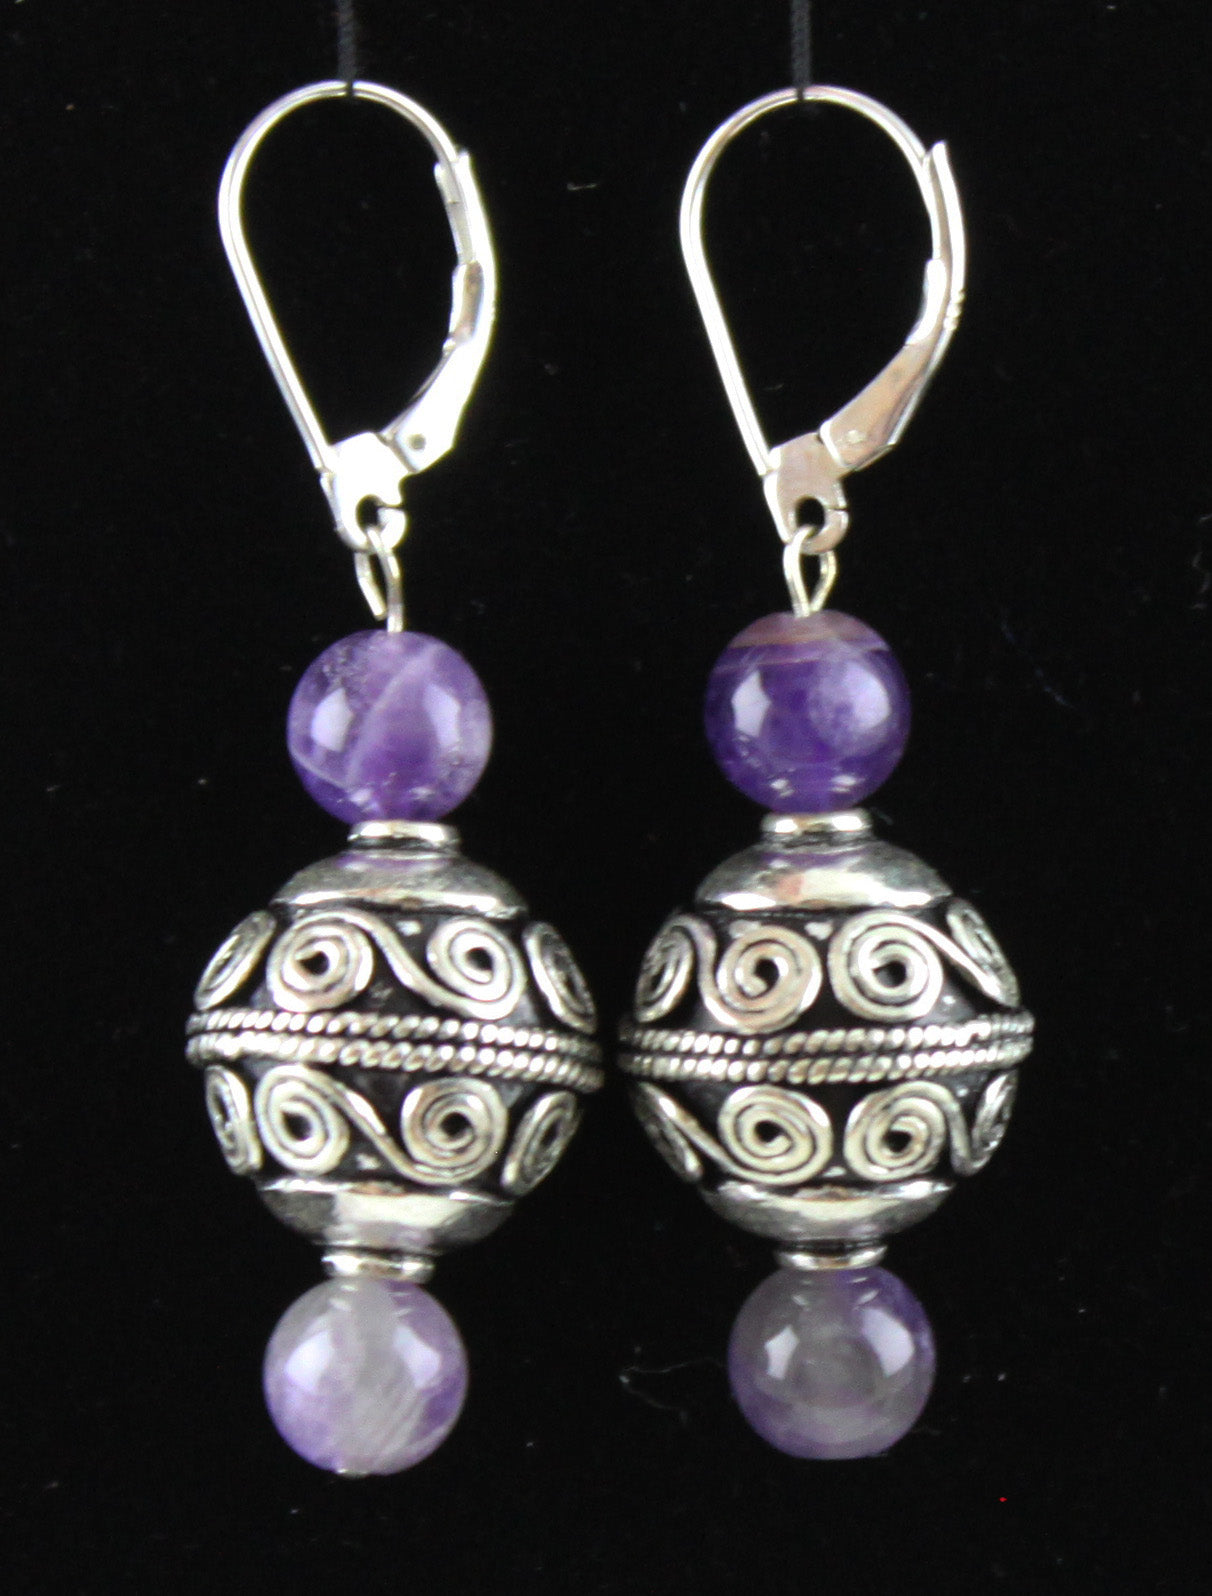 Large Bali Bead & Amethyst Earrings